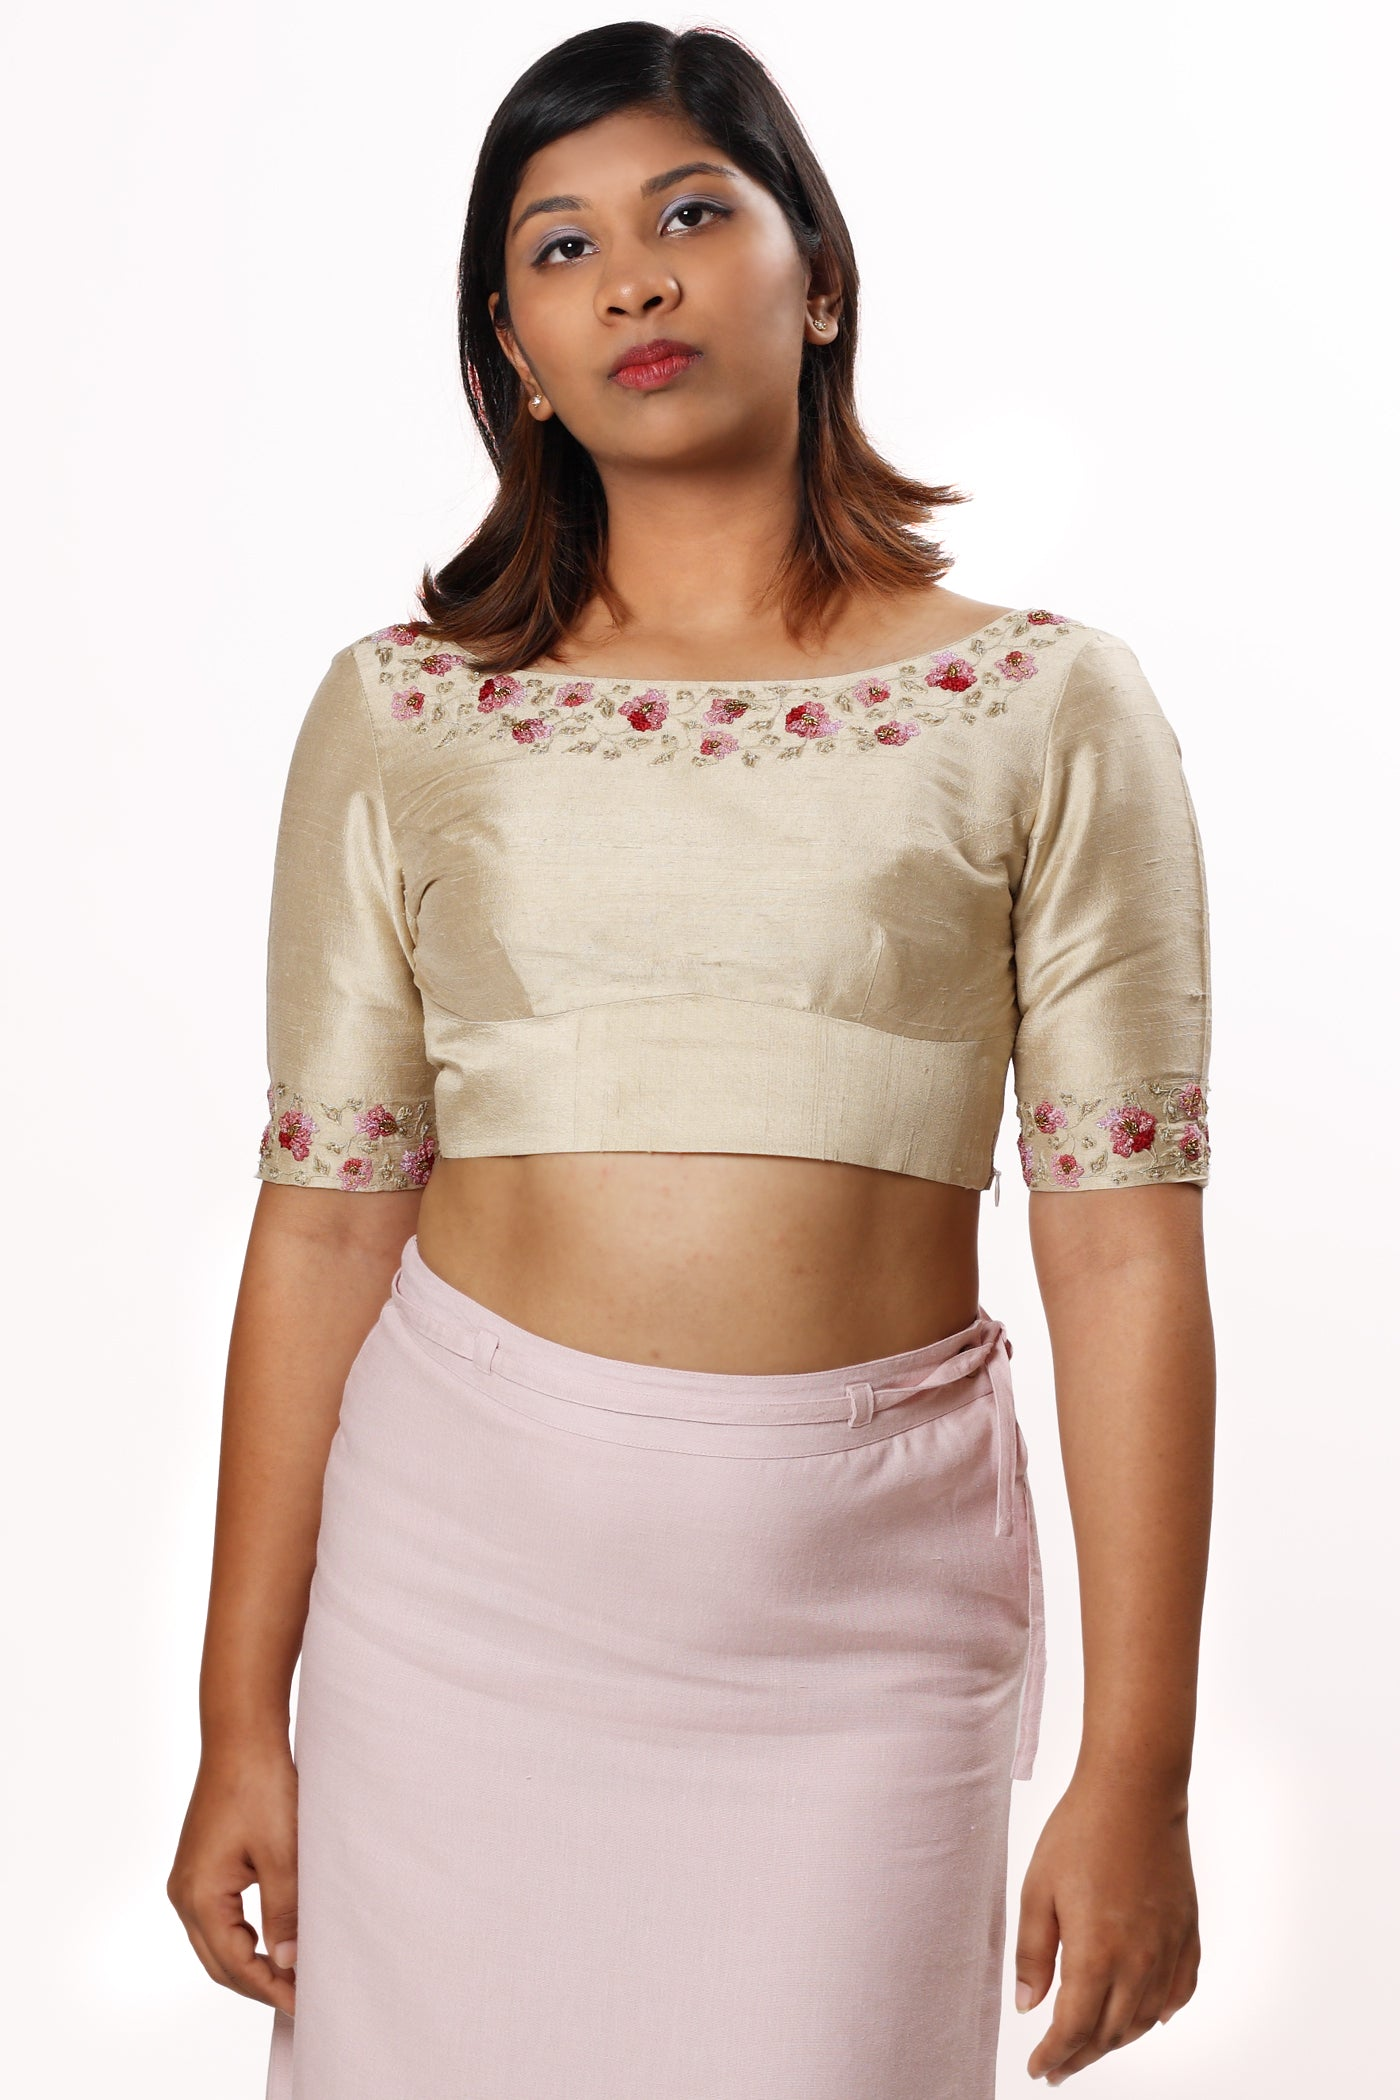 Hand Embroidered Blouse in Beige Silk - MINC ecofashion